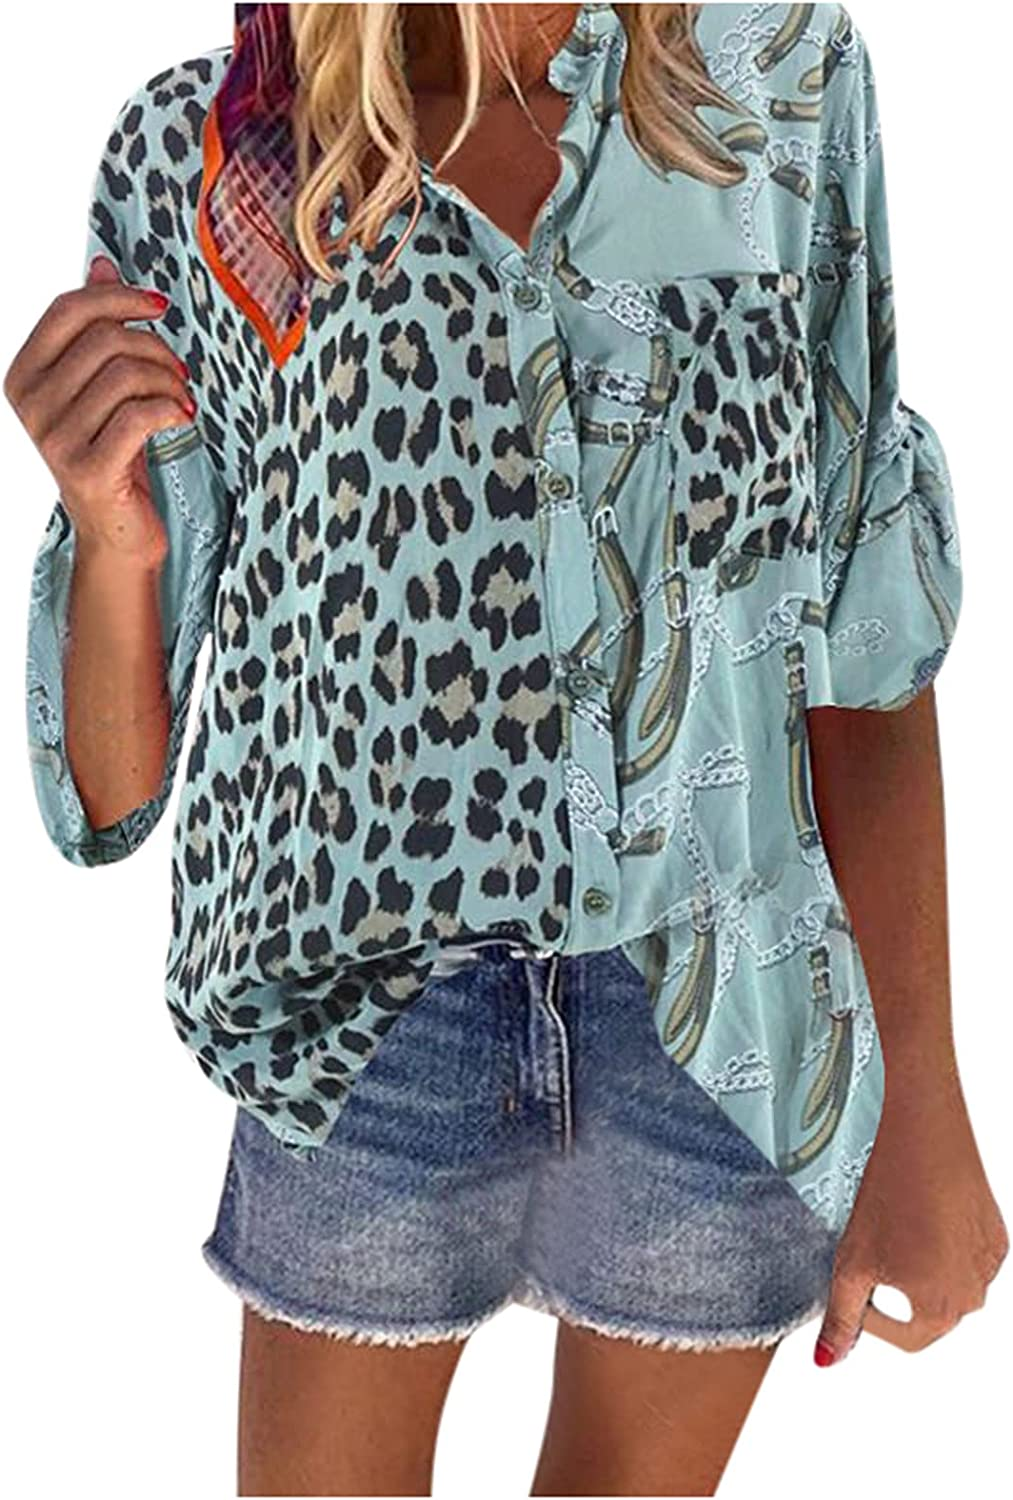 Blouses Free Shipping Cheap Bargain Gift for Women Max 56% OFF Fashion V Neck Casual Print Tops Long Leopard